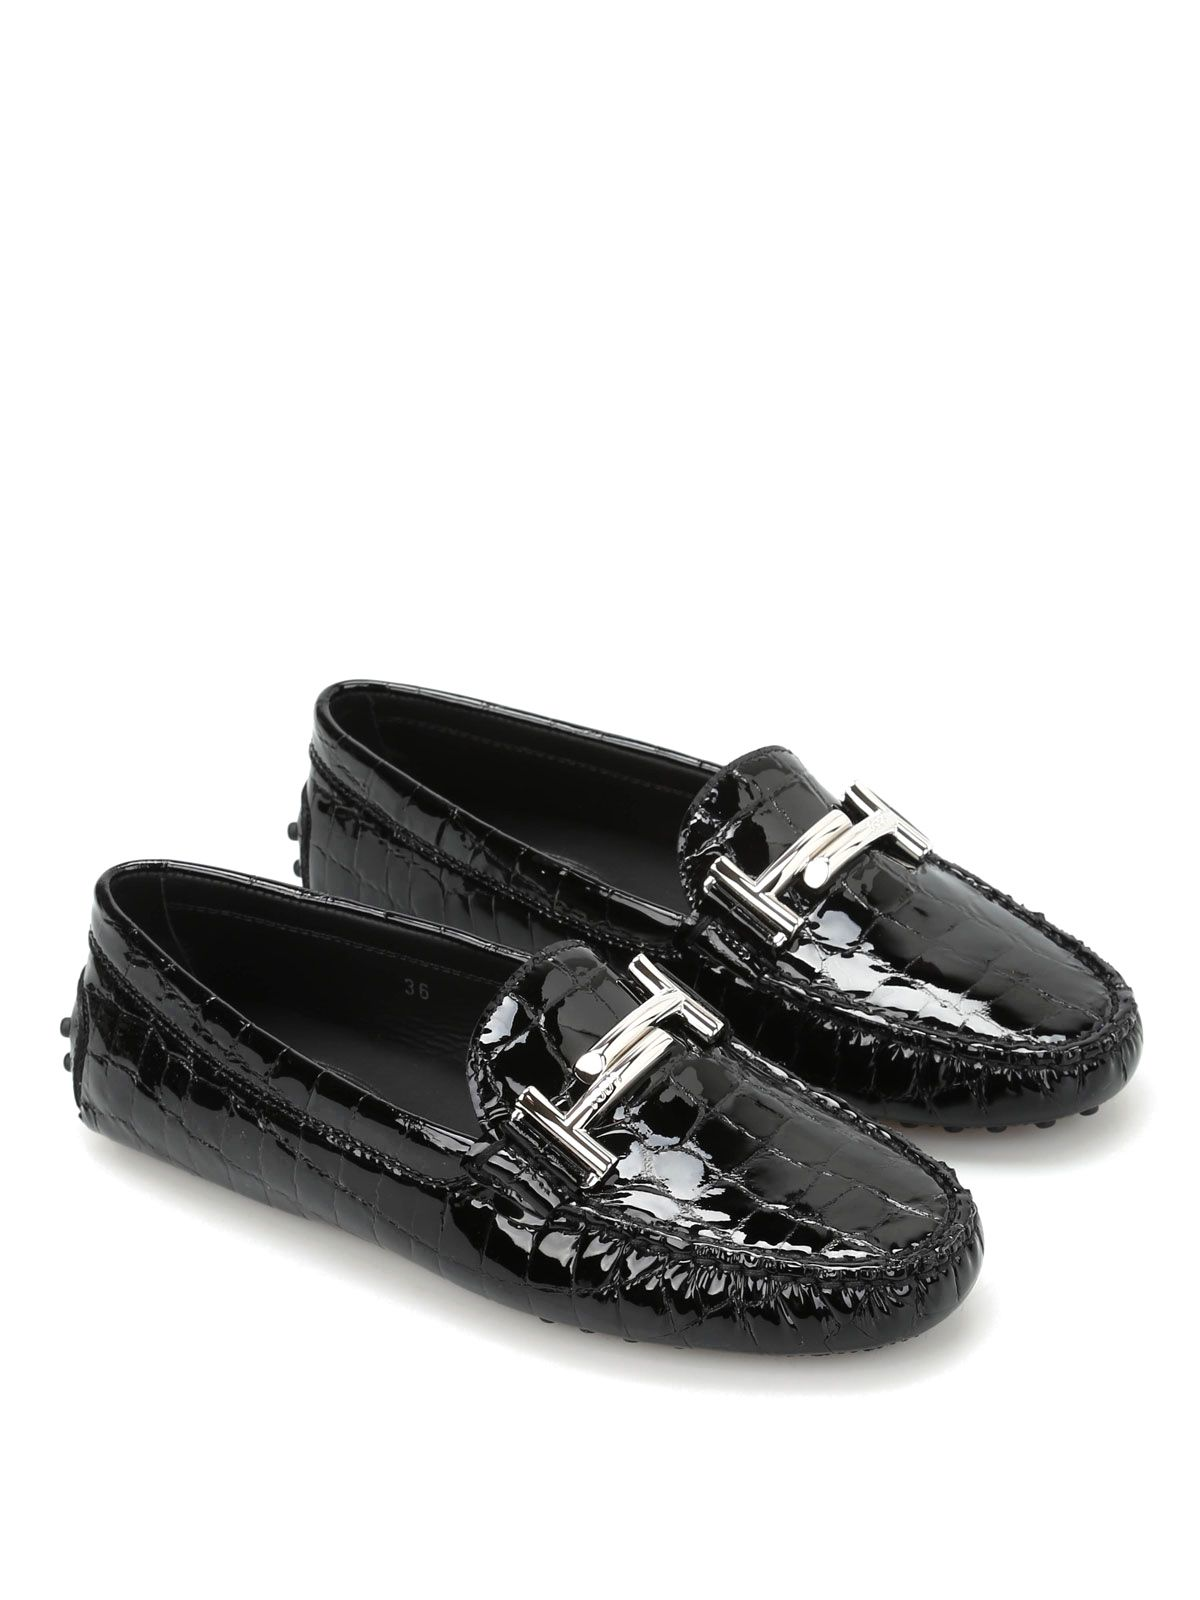 99029948929 Tod s Quilted Loafers - Black Tod s Quilted Loafers - Black ...